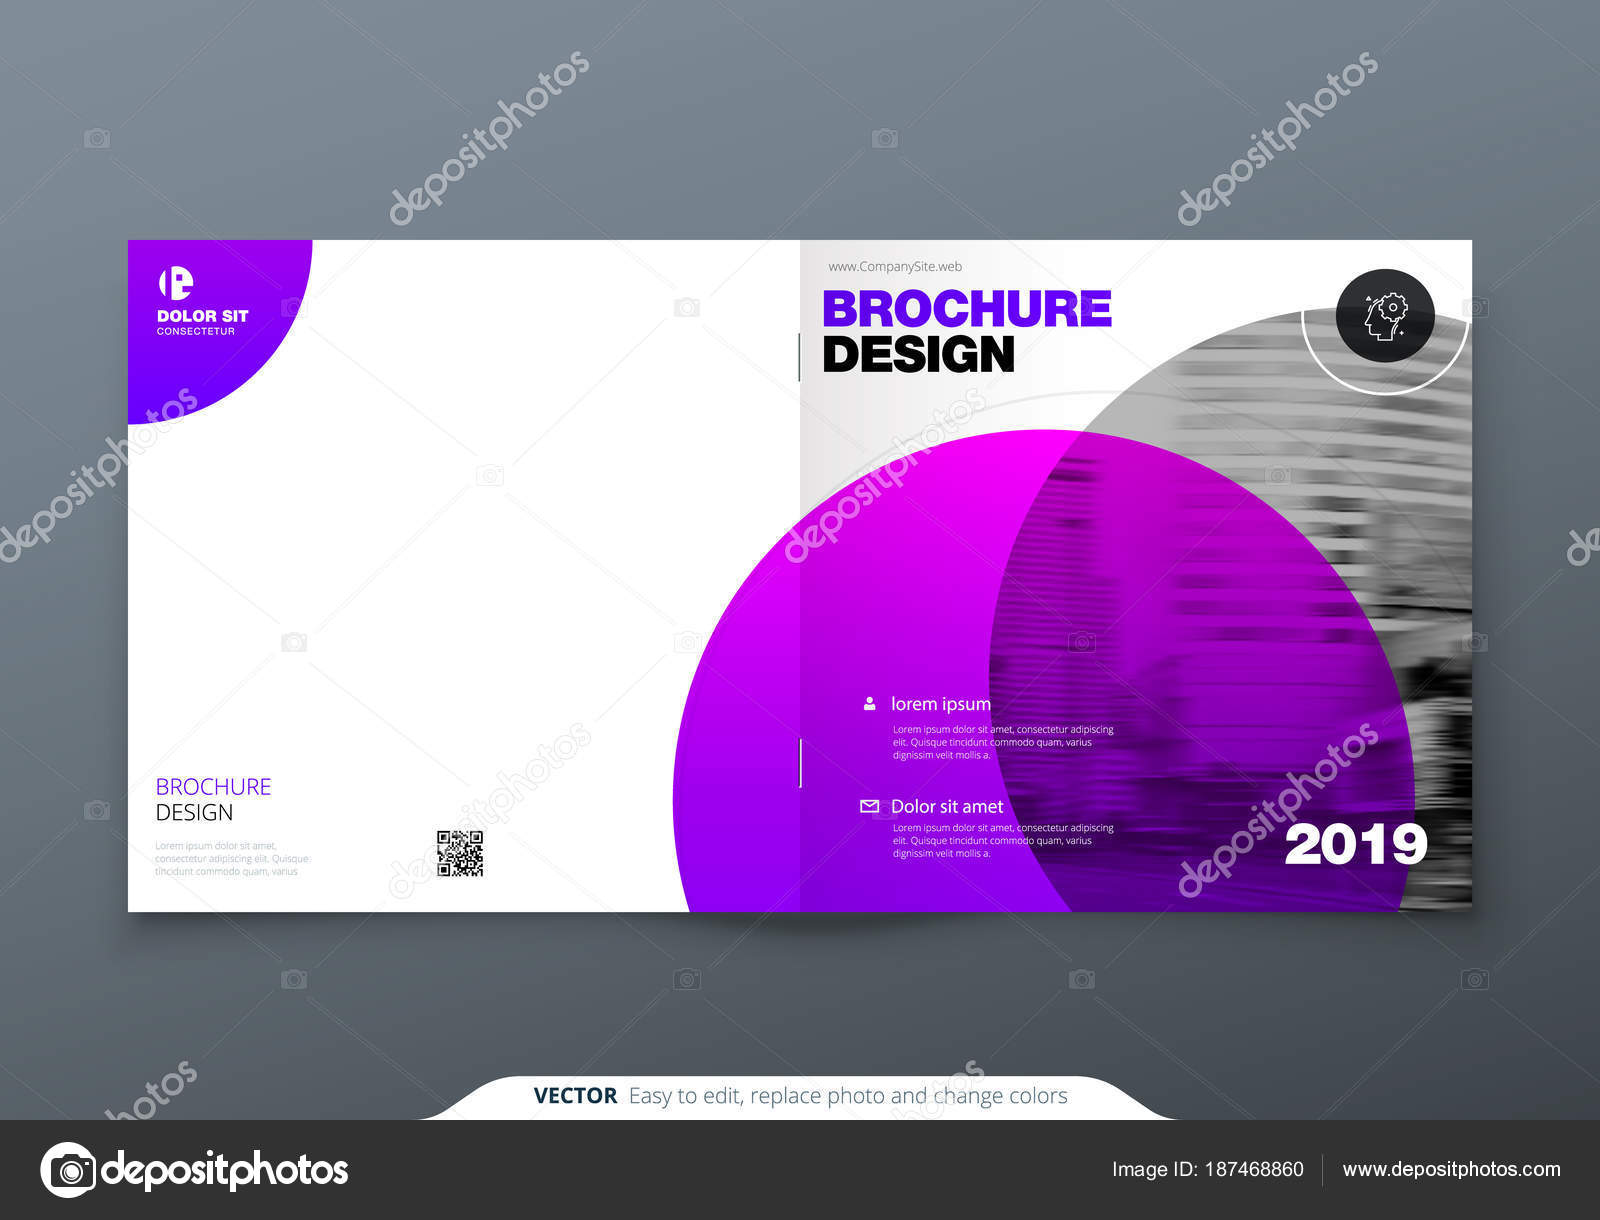 Square Brochure Design Violet Purple Corporate Business Rectangle Template Report Catalog Magazine Layout Modern Circle Abstract